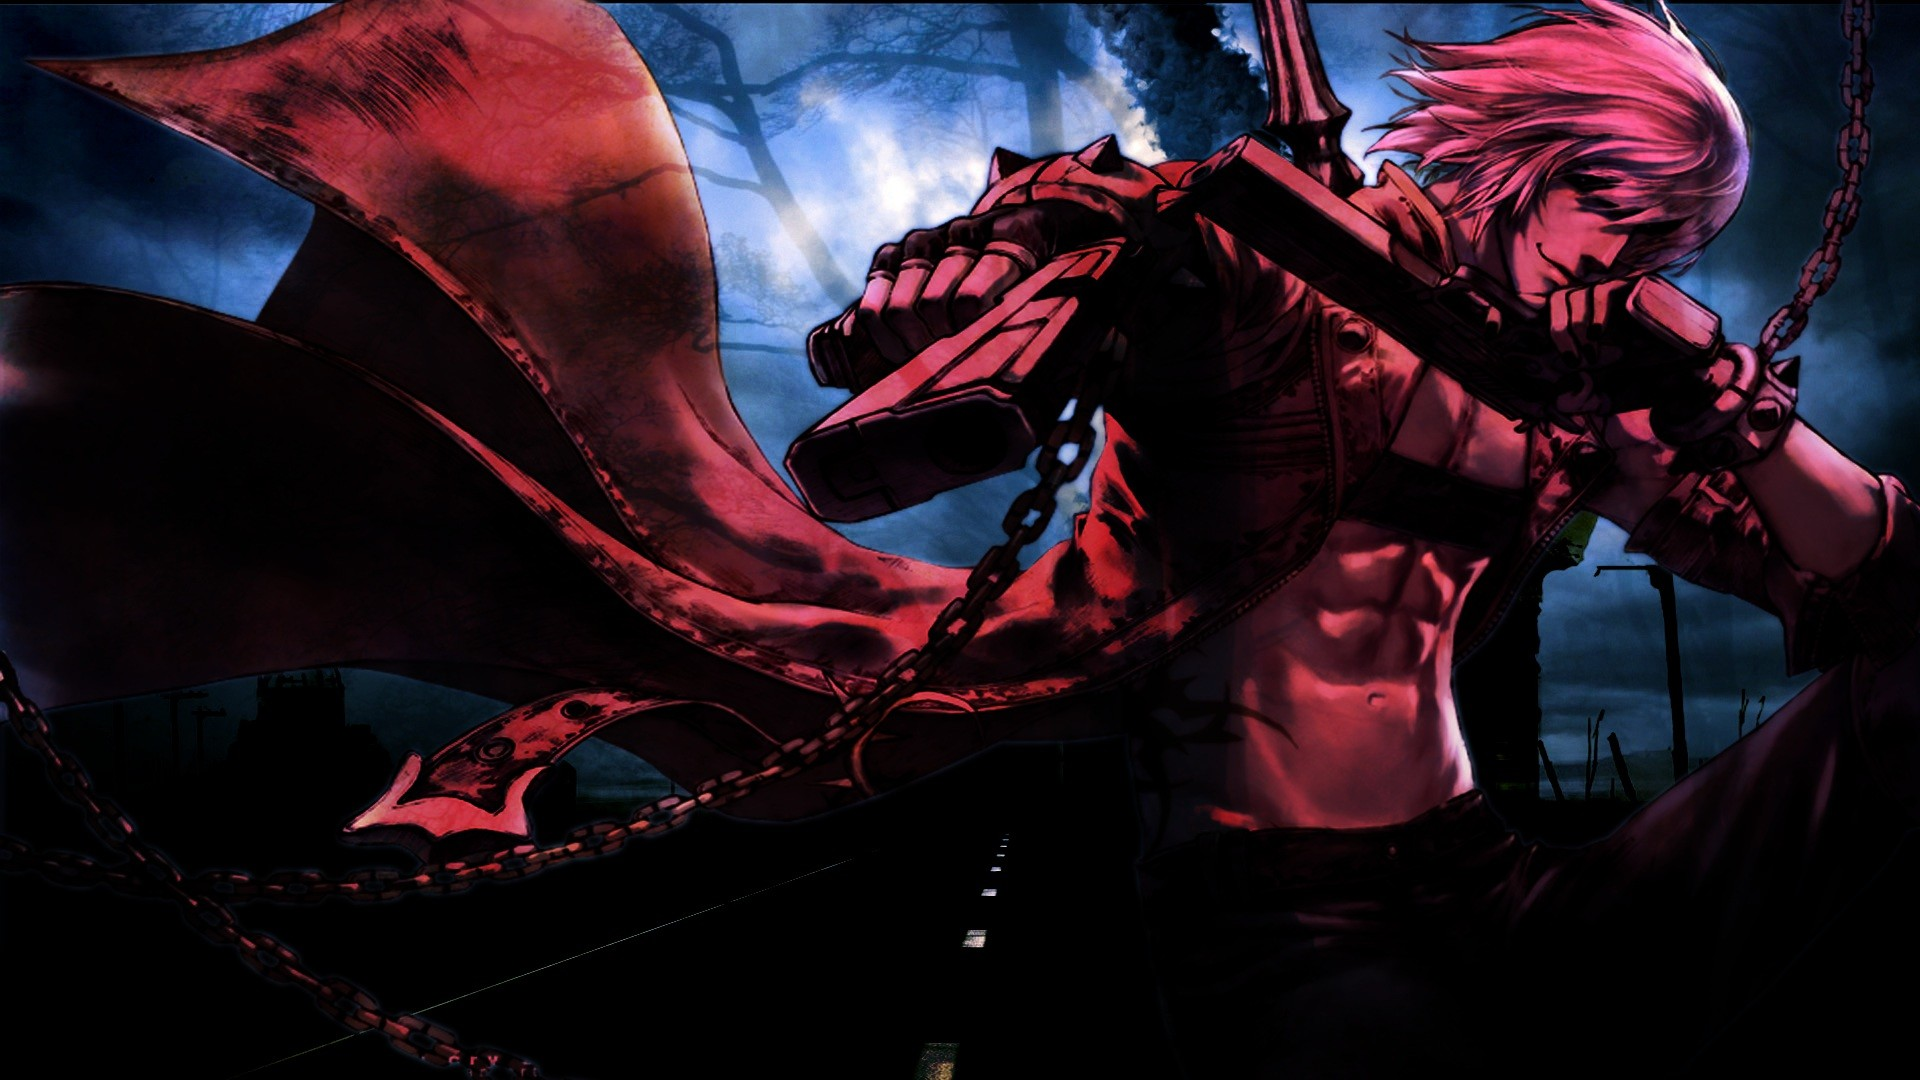 Devil May Cry Anime Wallpaper (65+ Images